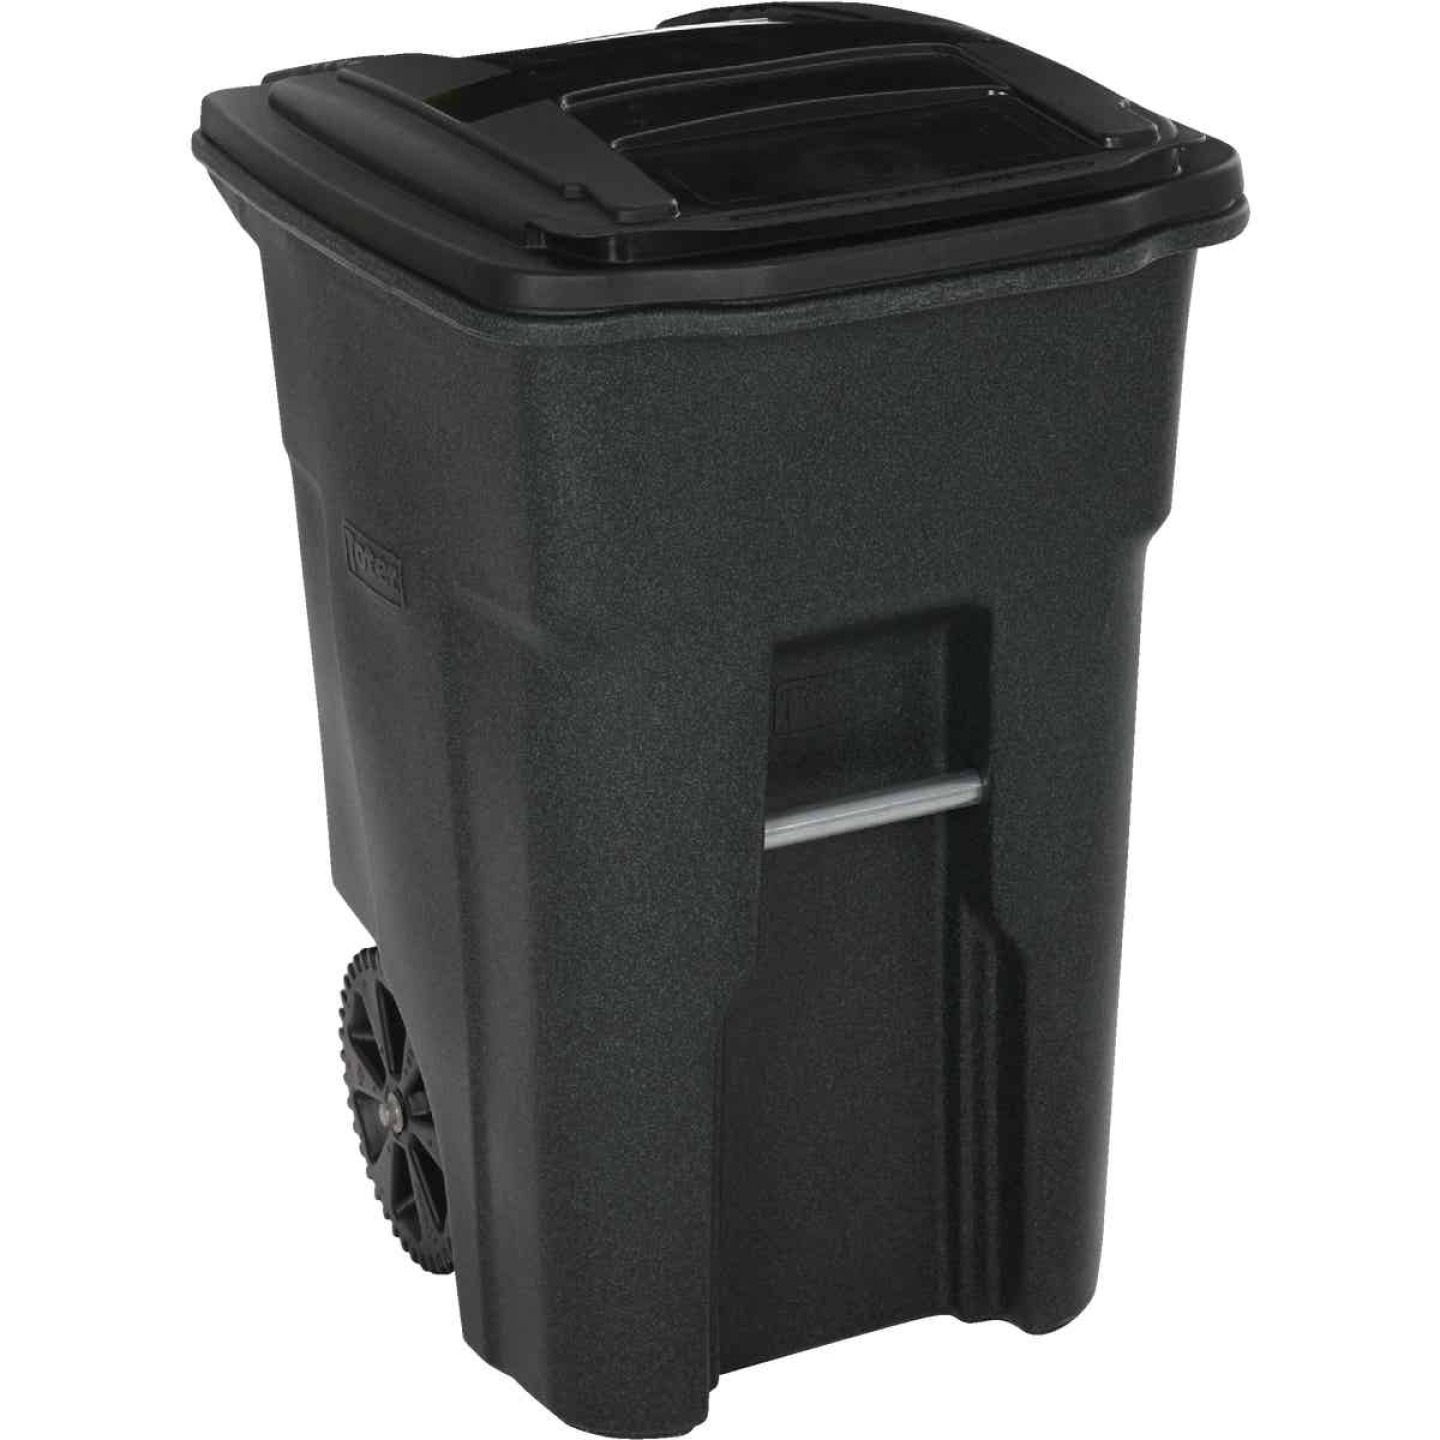 Toter 48 Gal. Commercial Trash Can Image 1